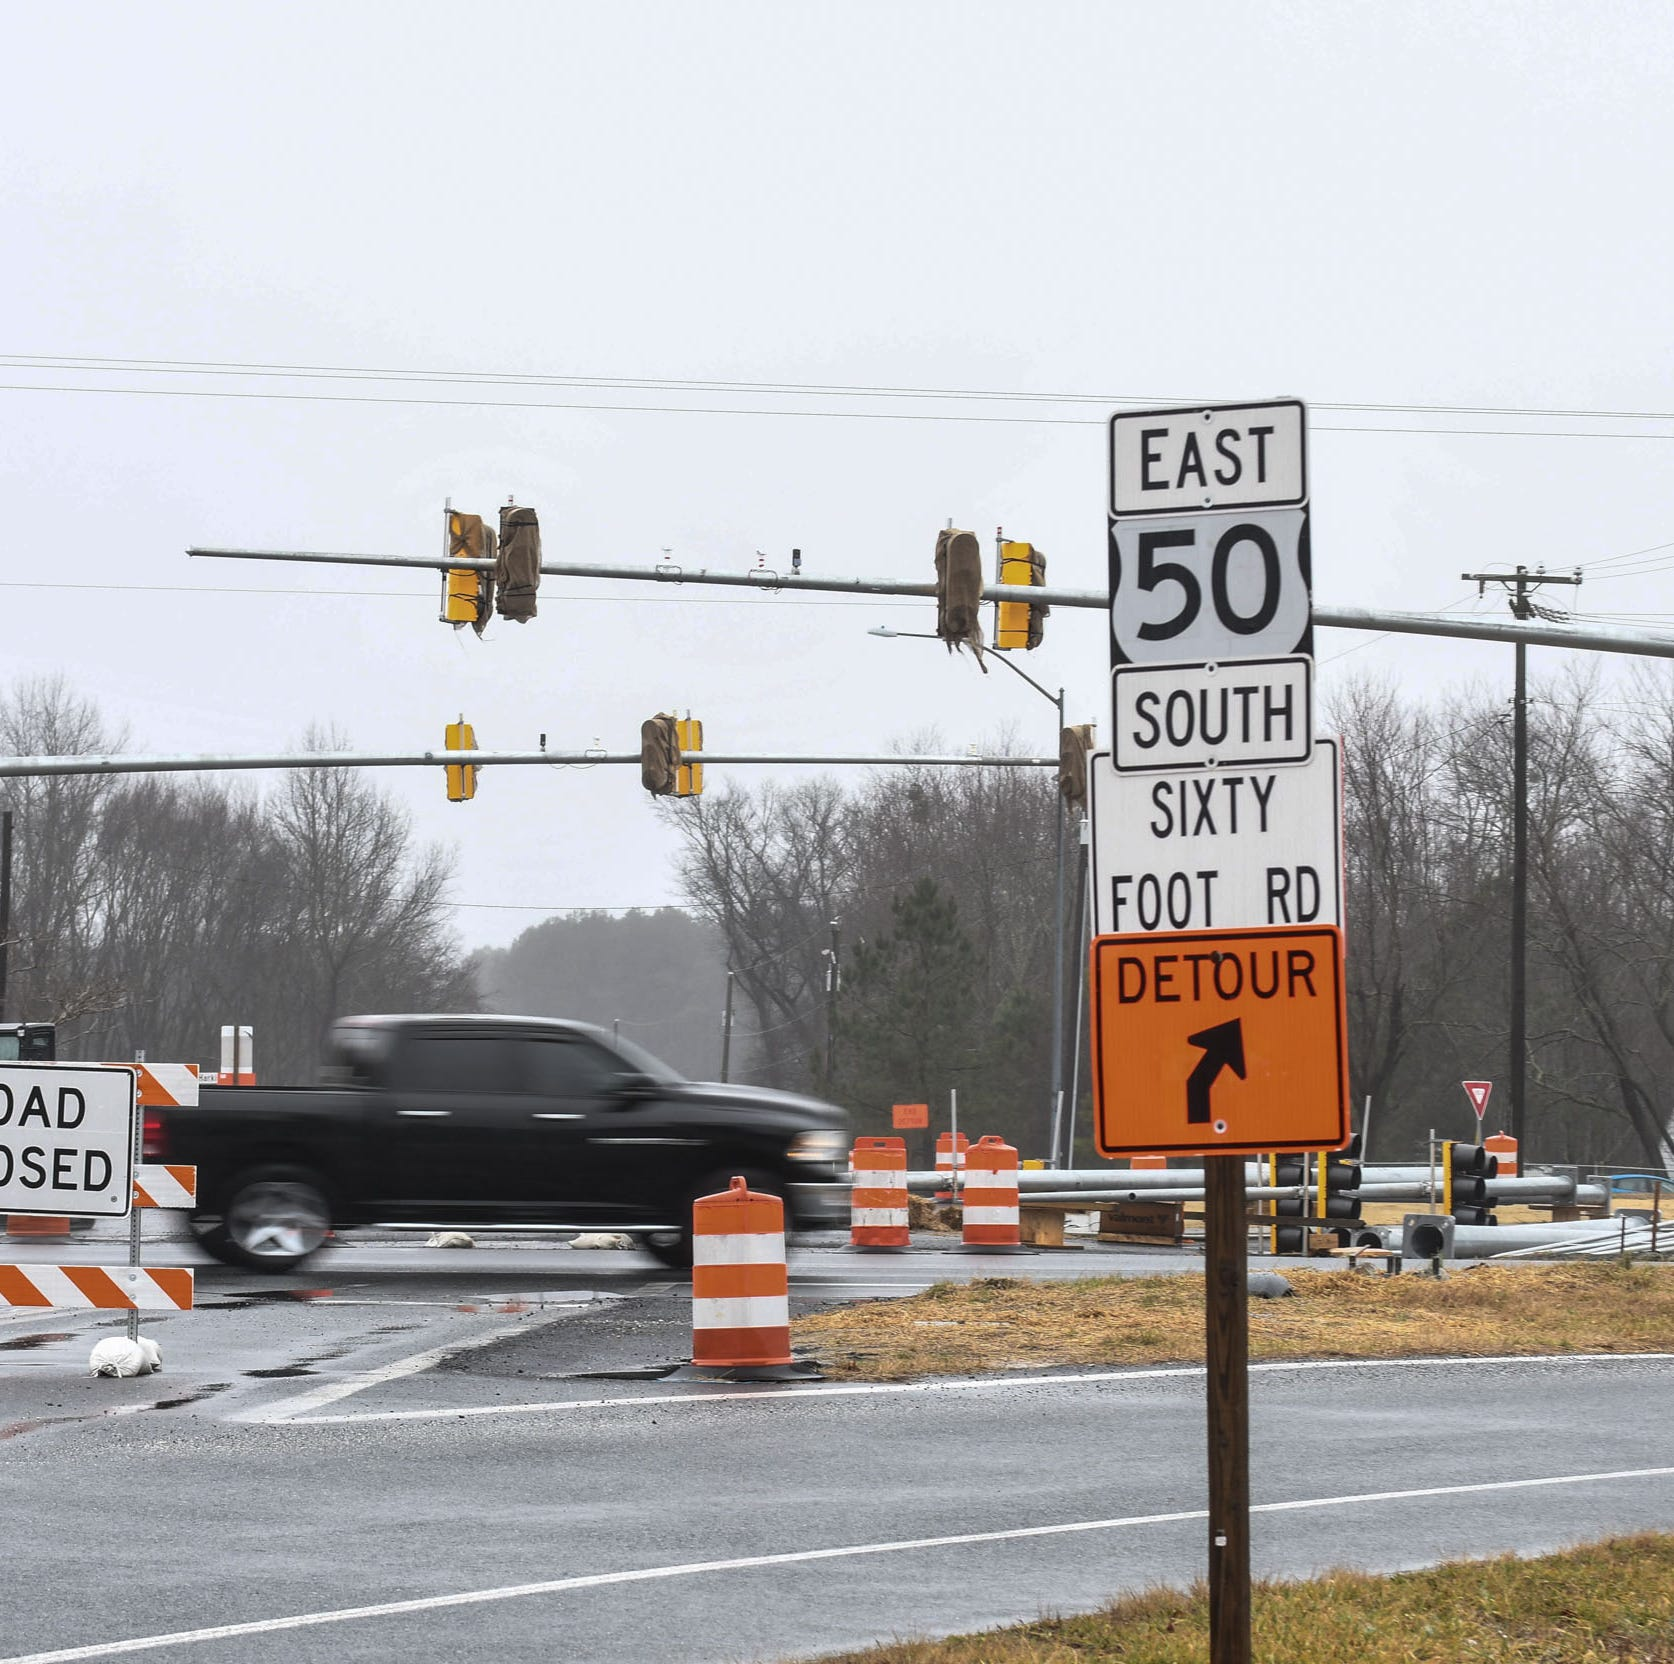 Sixty Foot Road construction to finish shortly